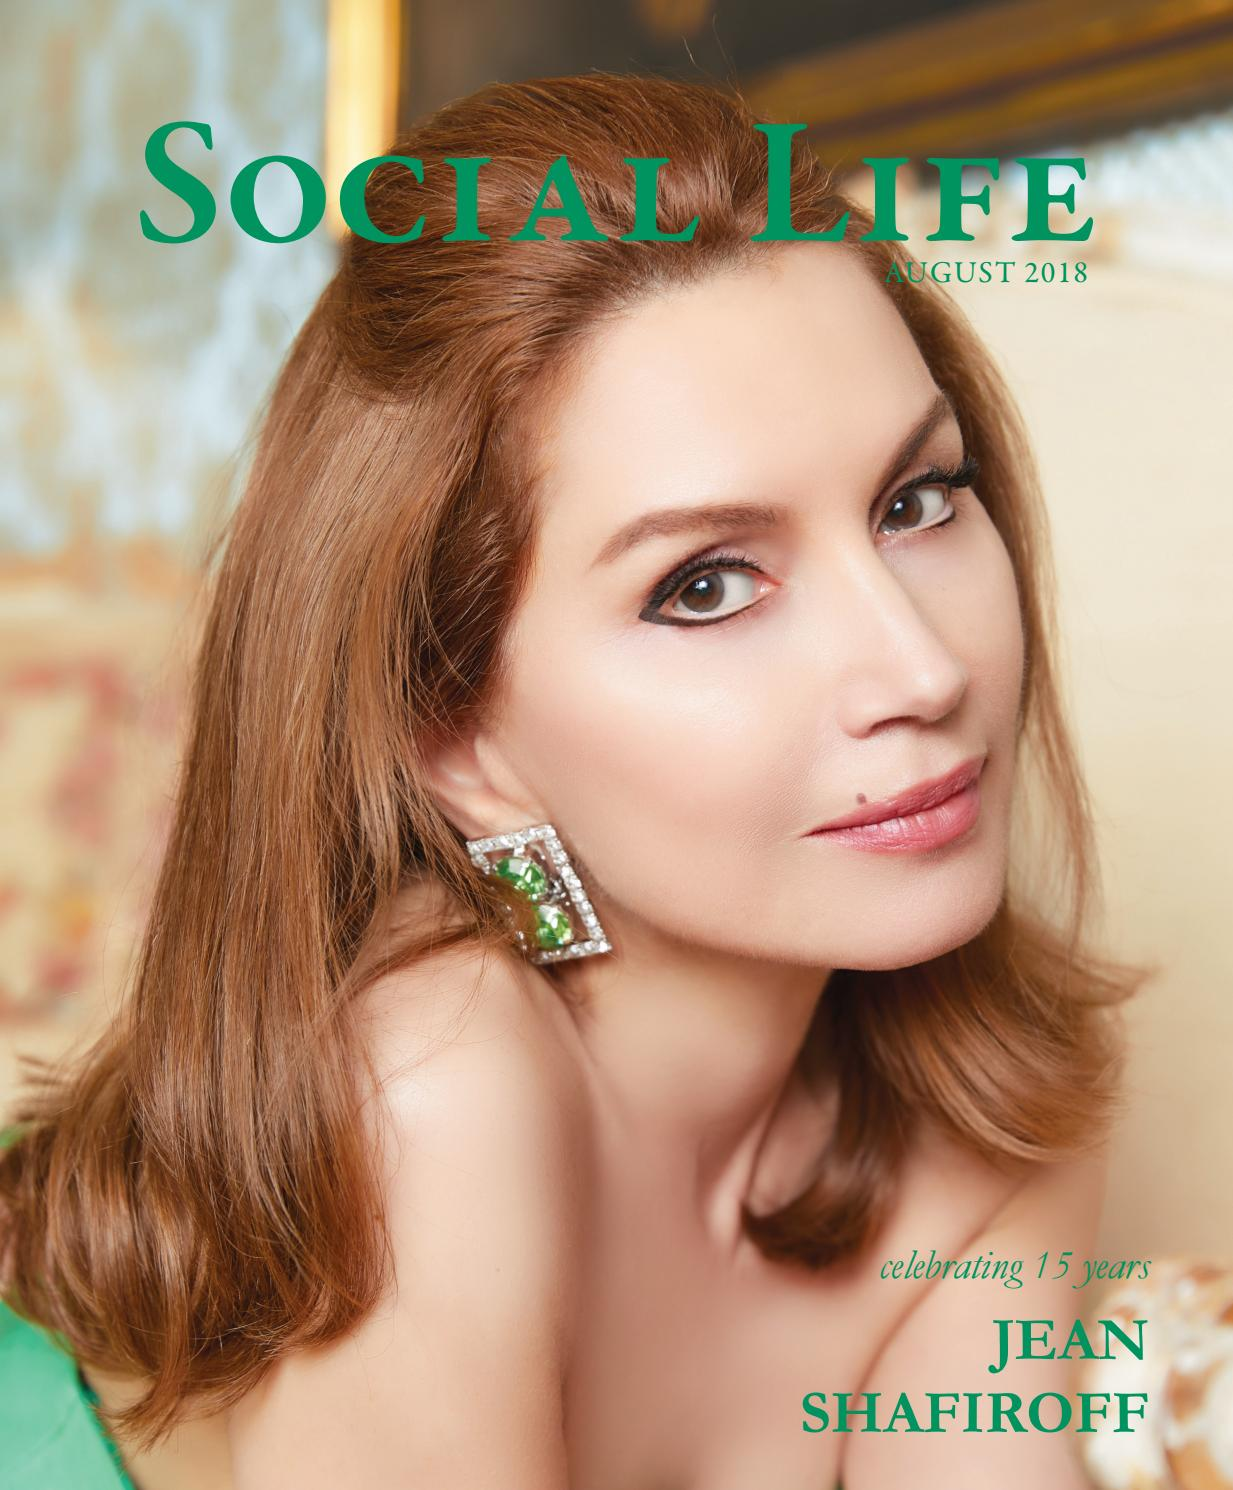 Social Life August 17 2018 Jean Shafiroff By Barbara Hair Styling Spray 450 Ml Magazine Issuu